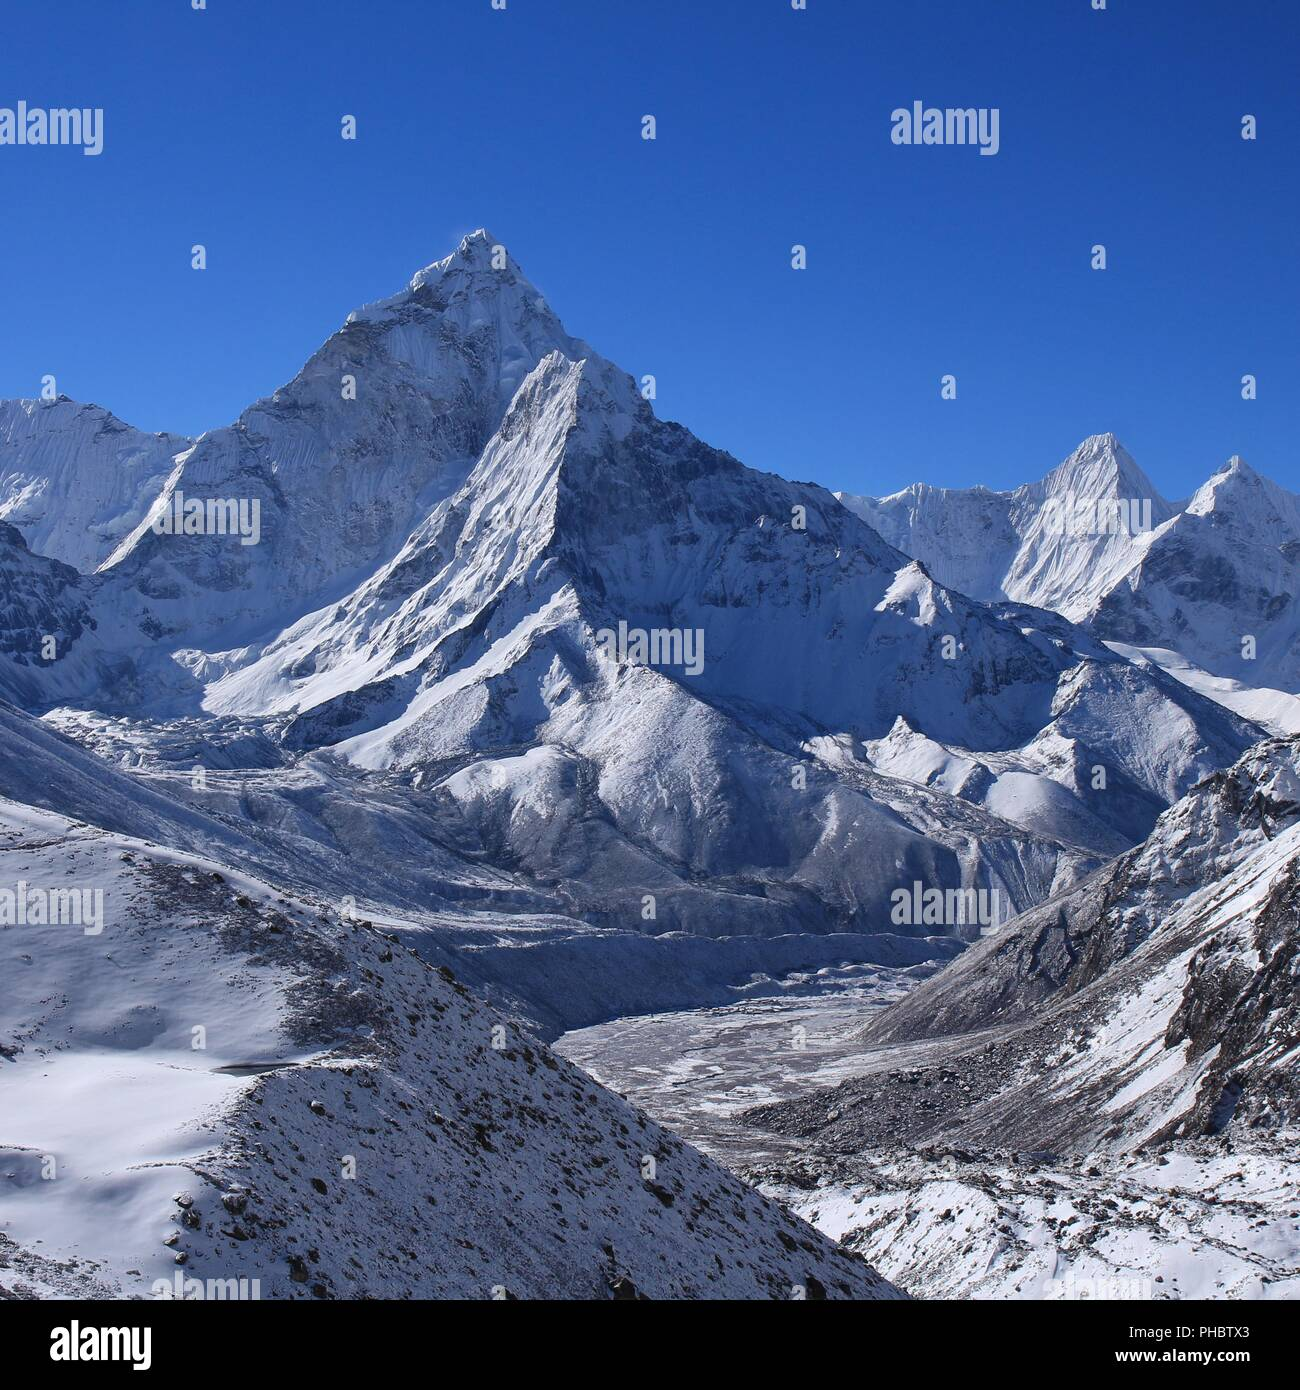 Mount Ama Dablam on a morning after new snowfall - Stock Image